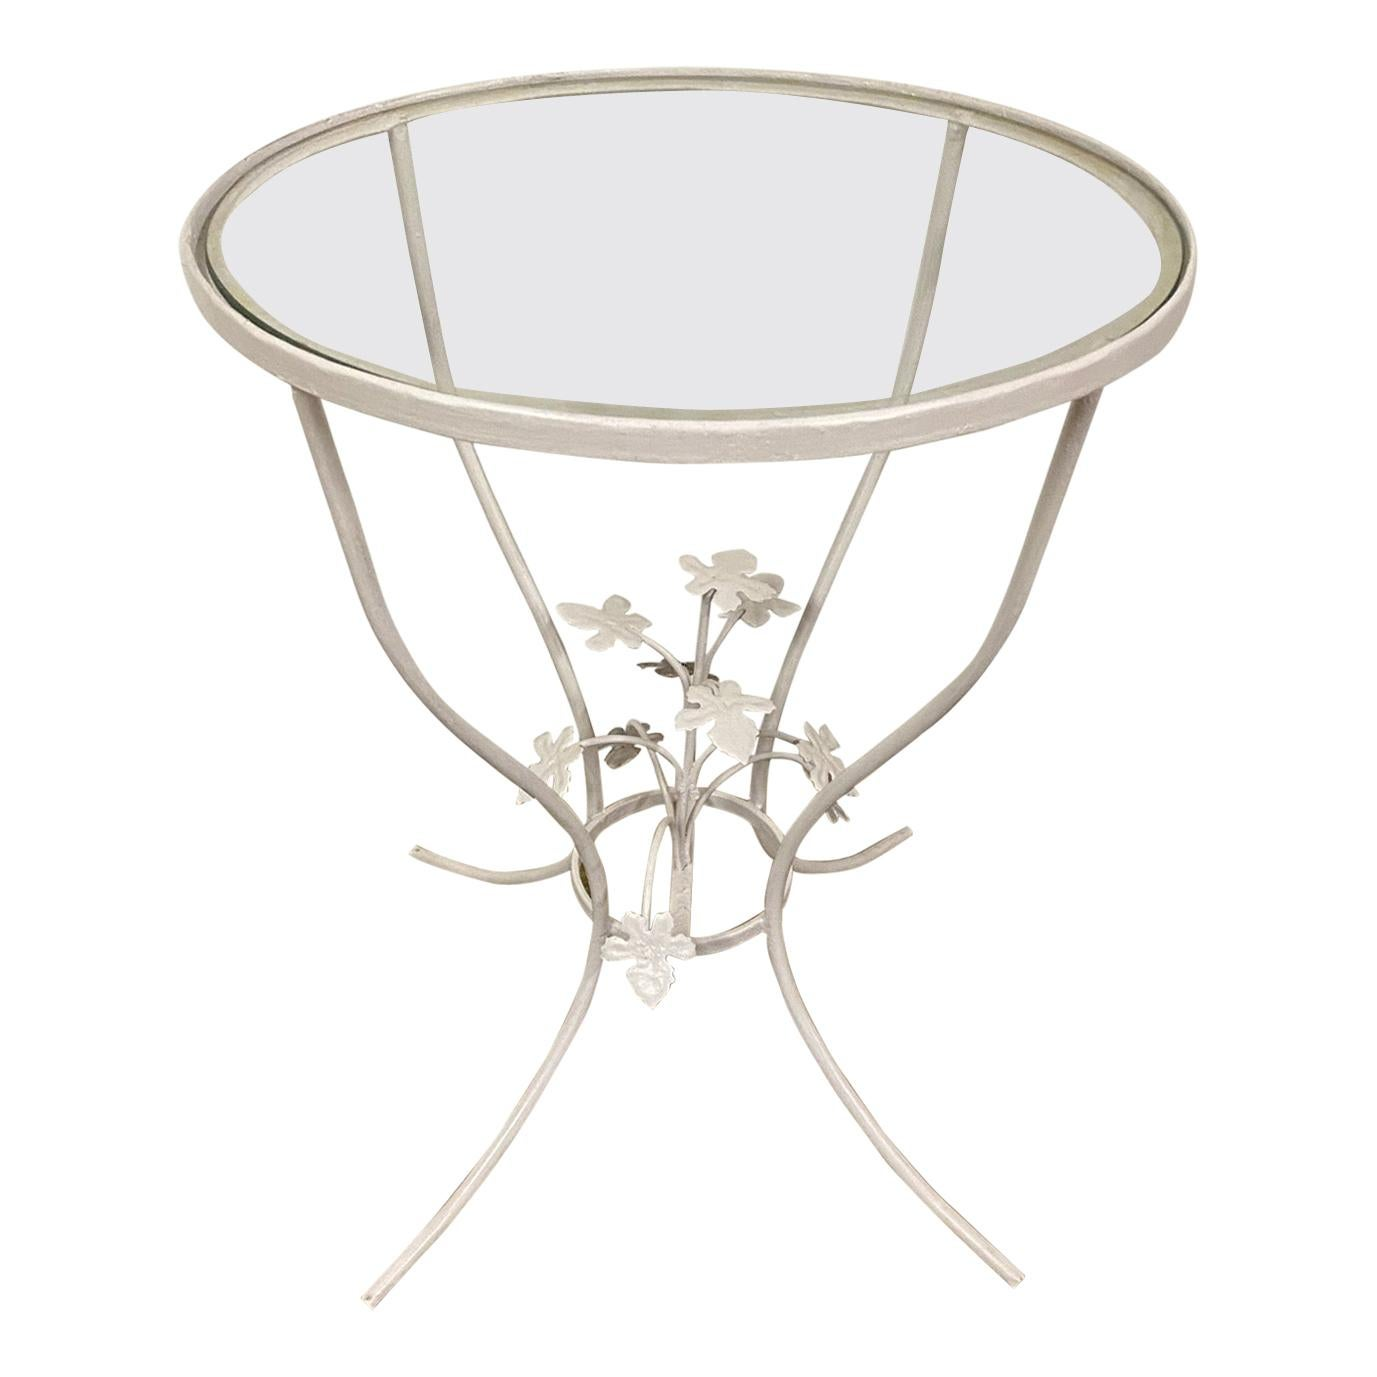 Small Glass and Metal Garden Table